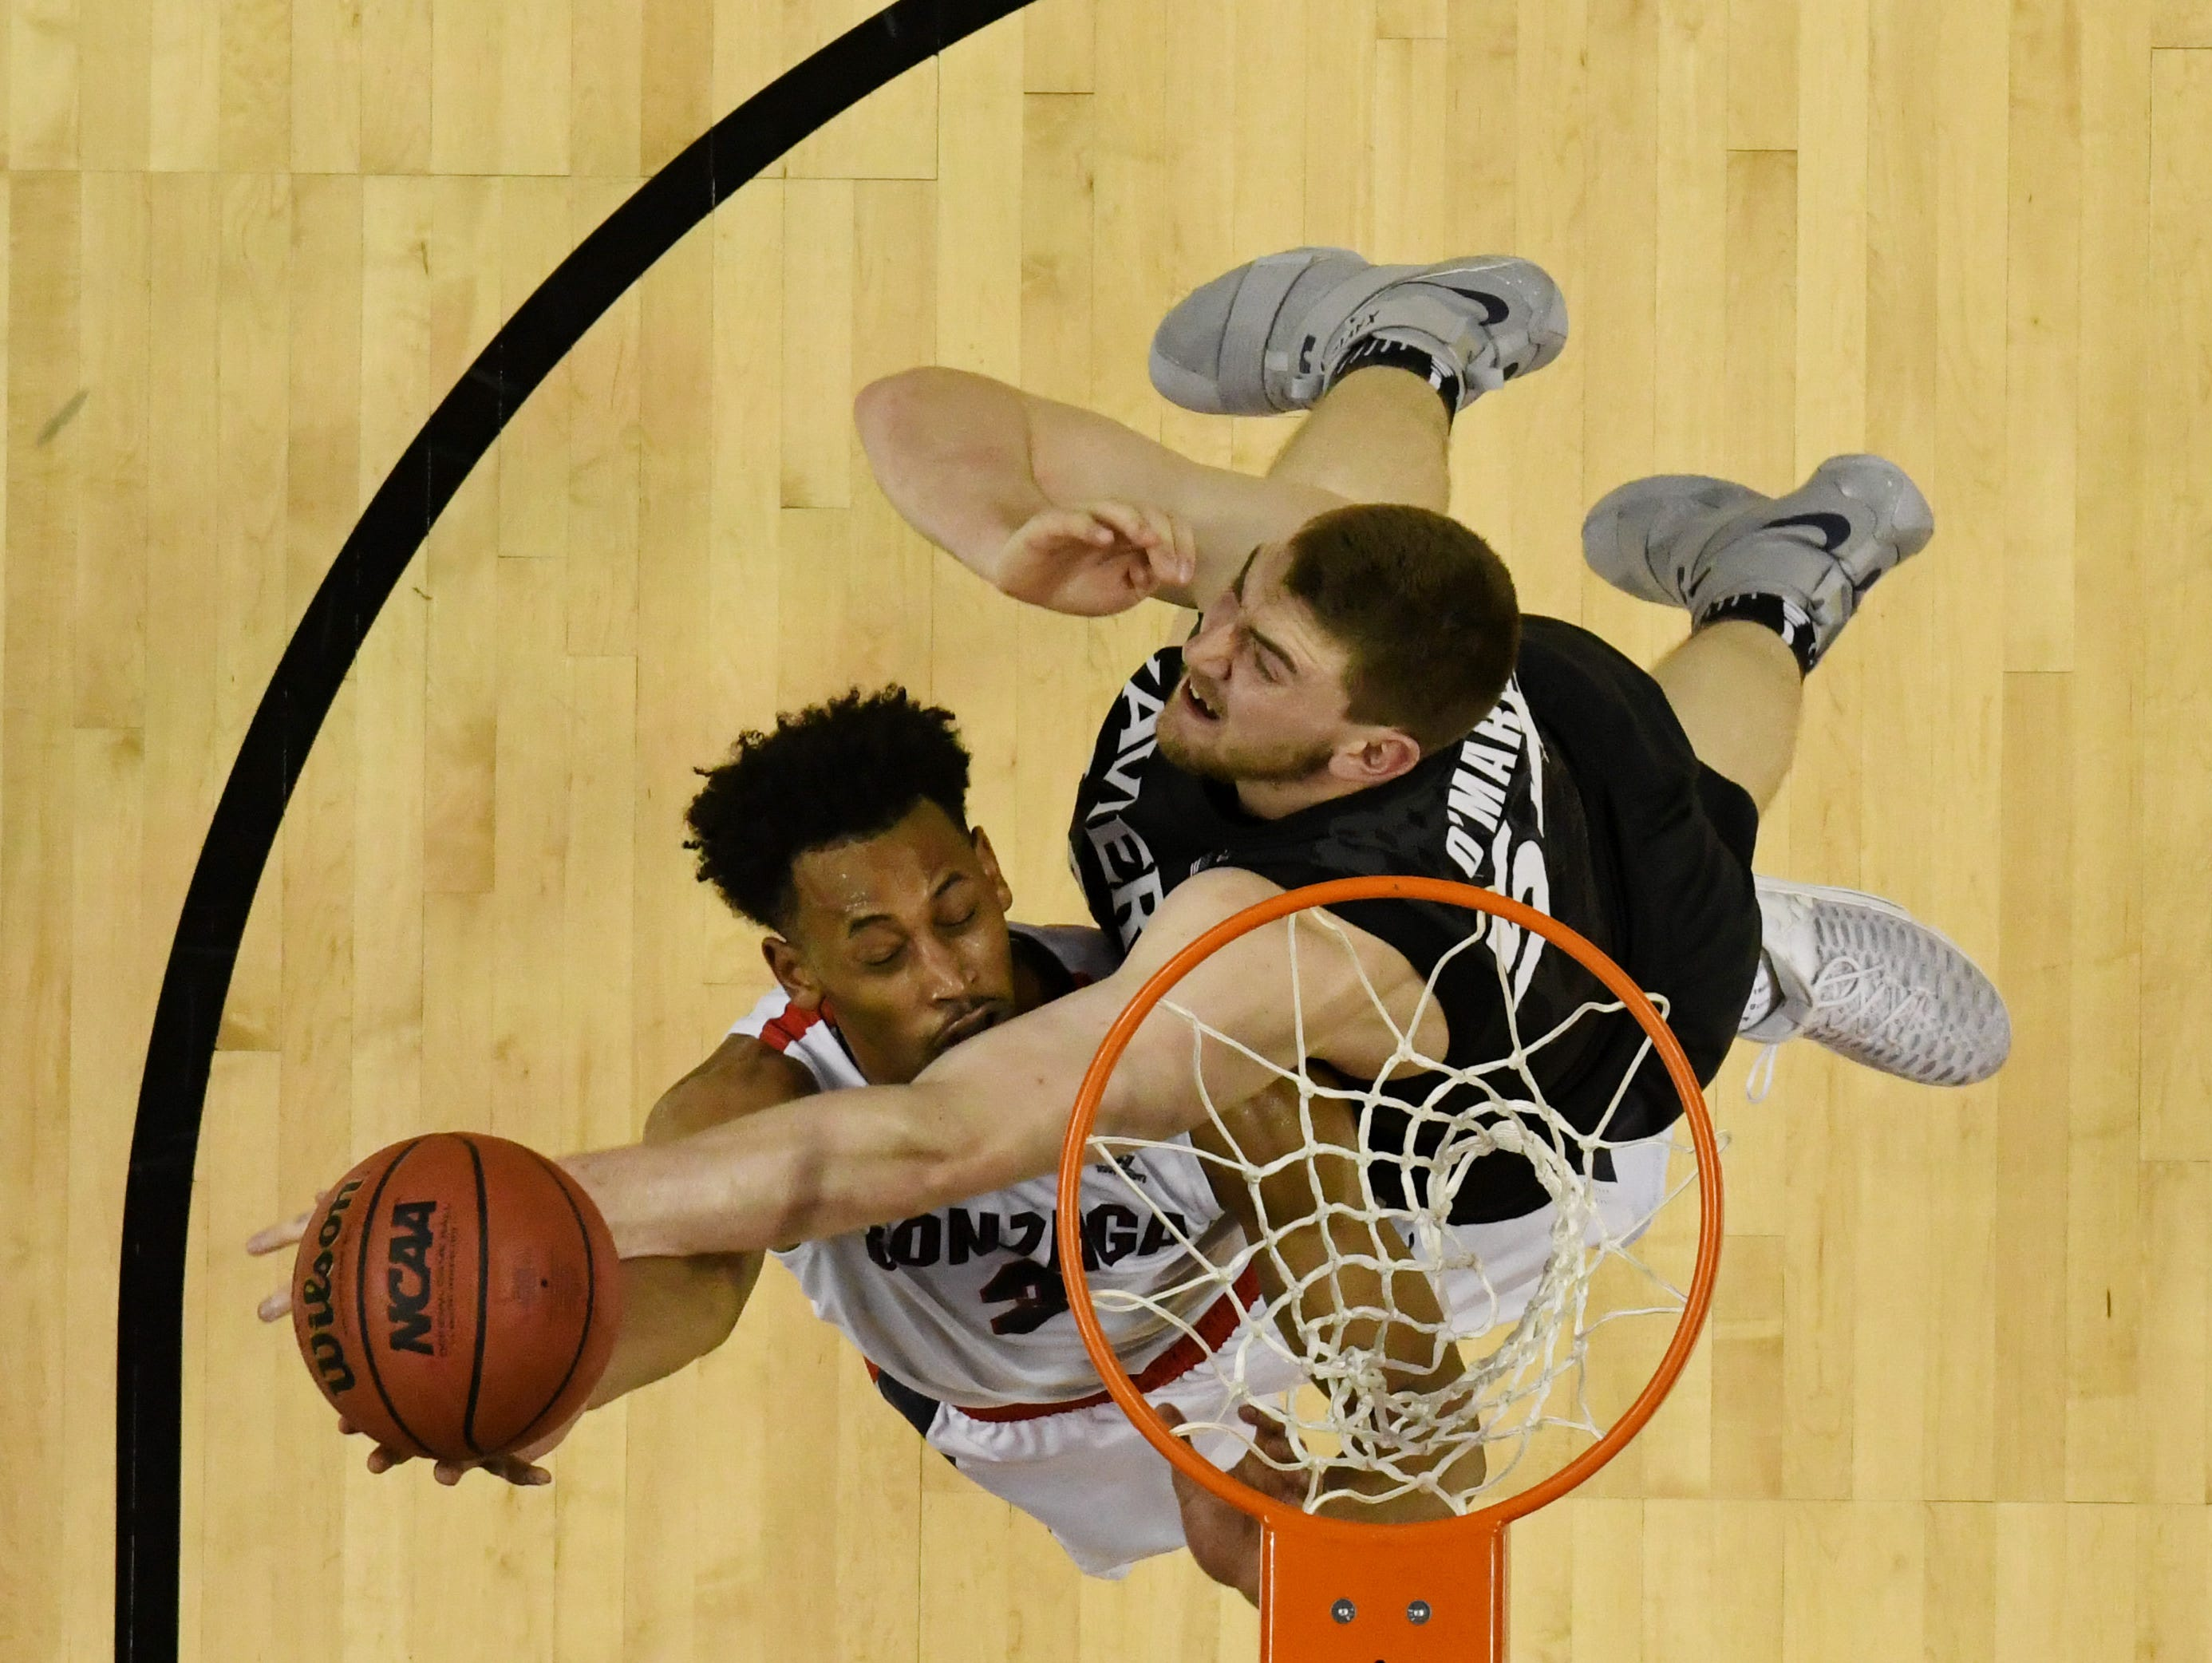 Gonzaga Bulldogs forward Johnathan Williams (3) shoots against Xavier Musketeers forward Sean O'Mara (54) in the finals of the West Regional of the 2017 NCAA Tournament at SAP Center.